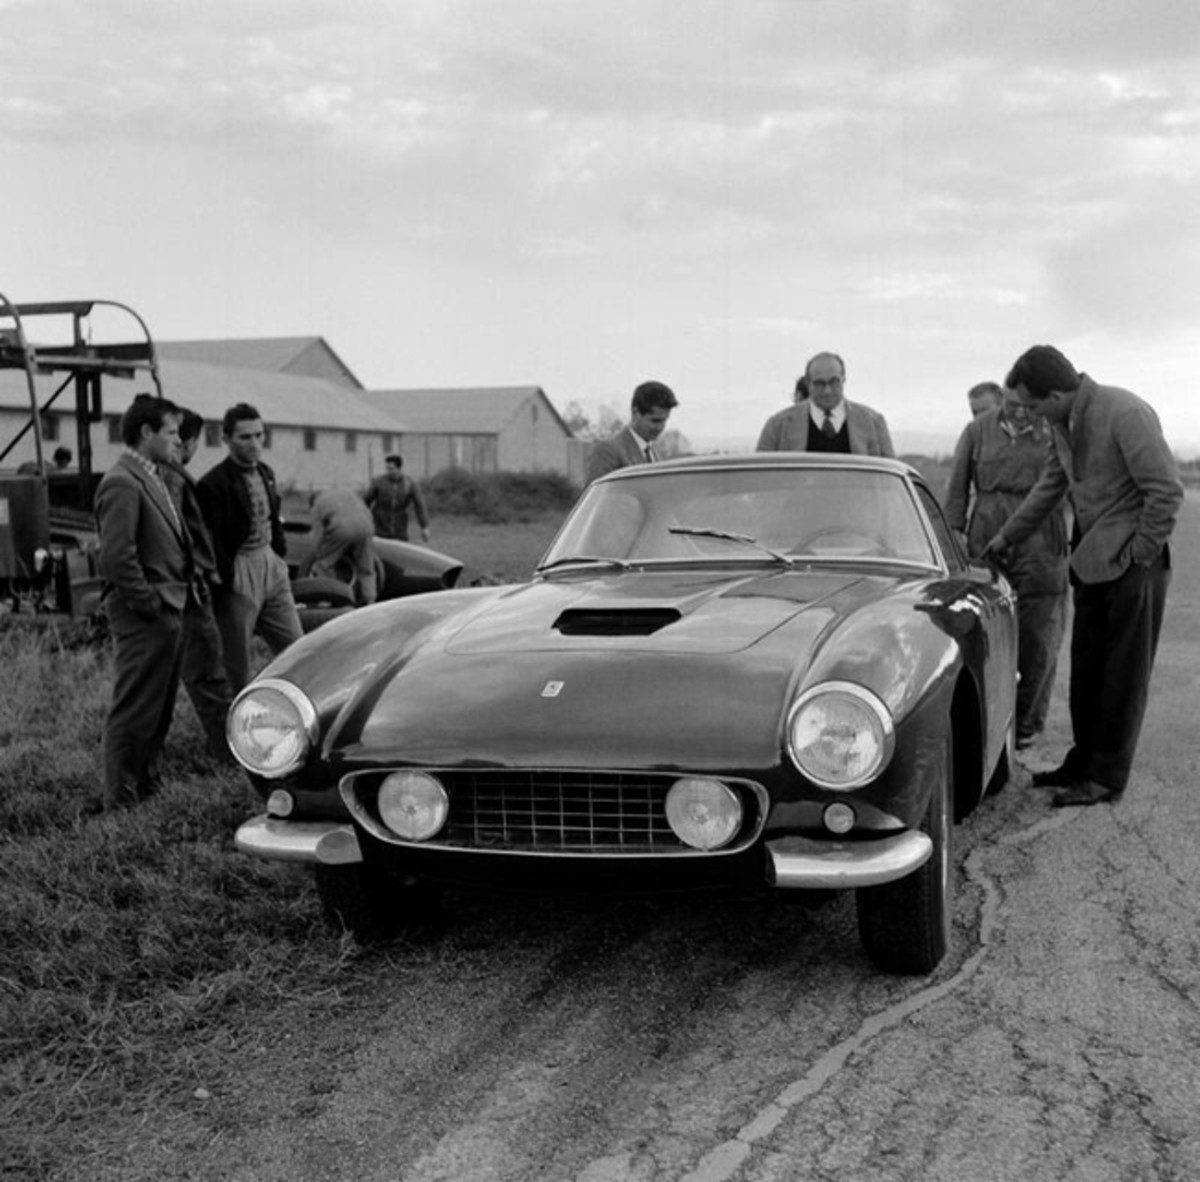 The 250 GT SWB berlinetta protoype. Photo courtesy of The Klemantaski Collection